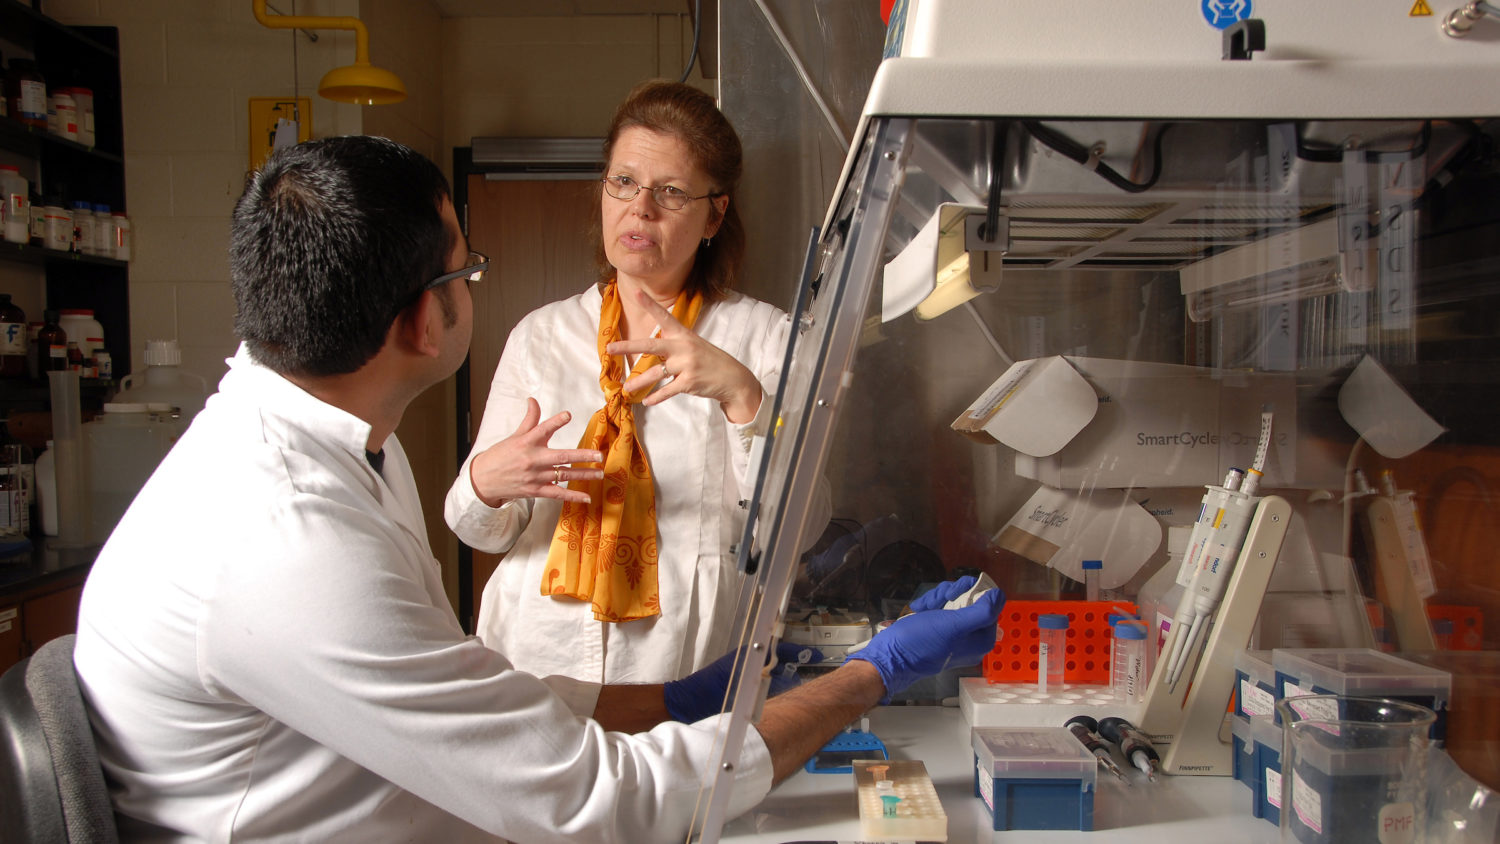 Professor discusses research work with grad student in lab.